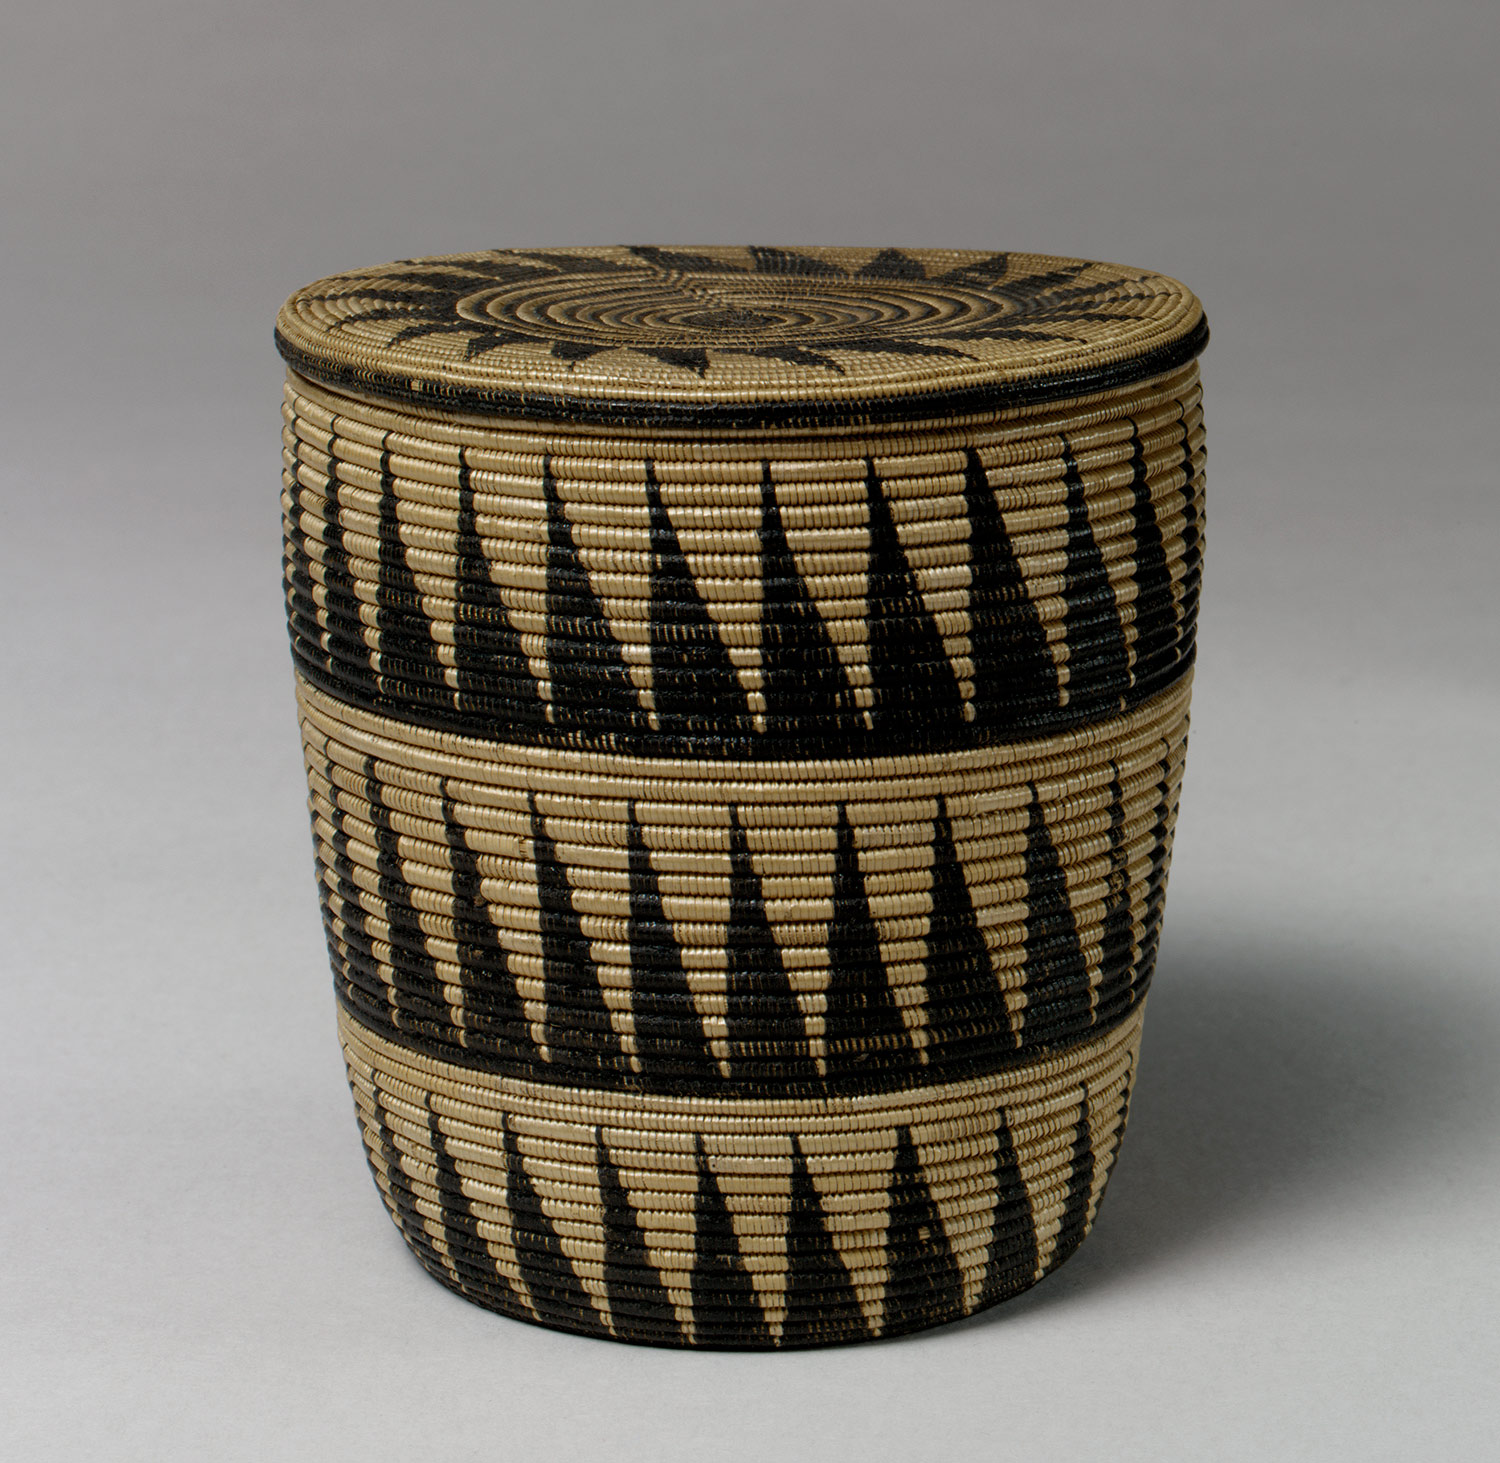 Basket Weaving Origin : Arts in rwanda